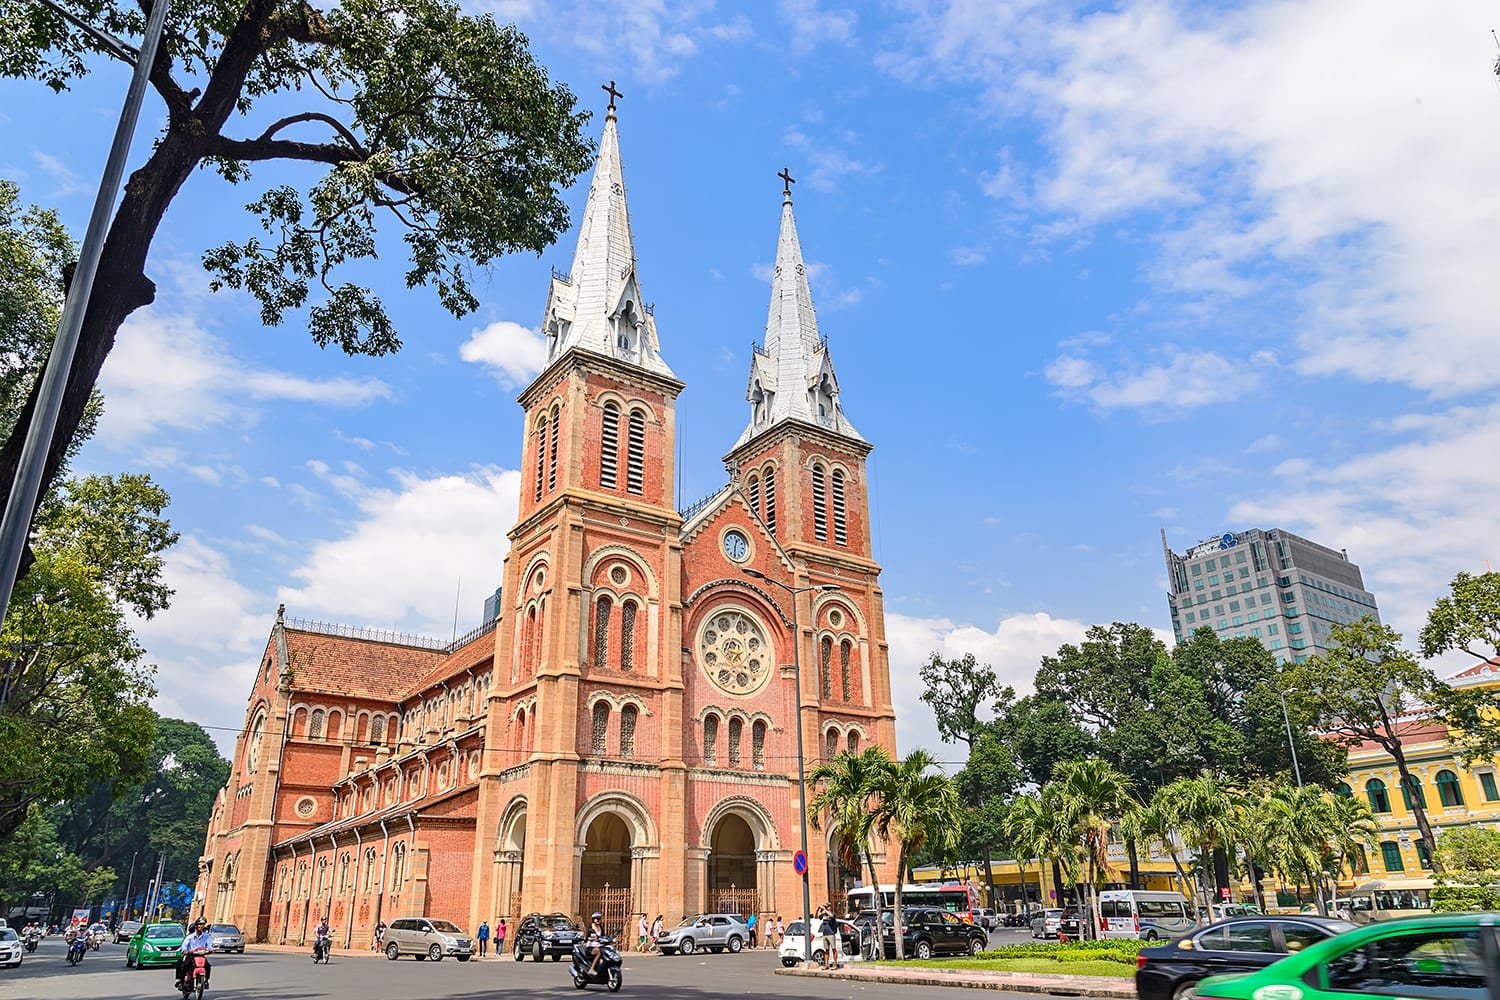 Saigon Notre-Dame Cathedral Basilica (Basilica of Our Lady of The Immaculate Conception) on blue sky background in Ho Chi Minh city, Vietnam